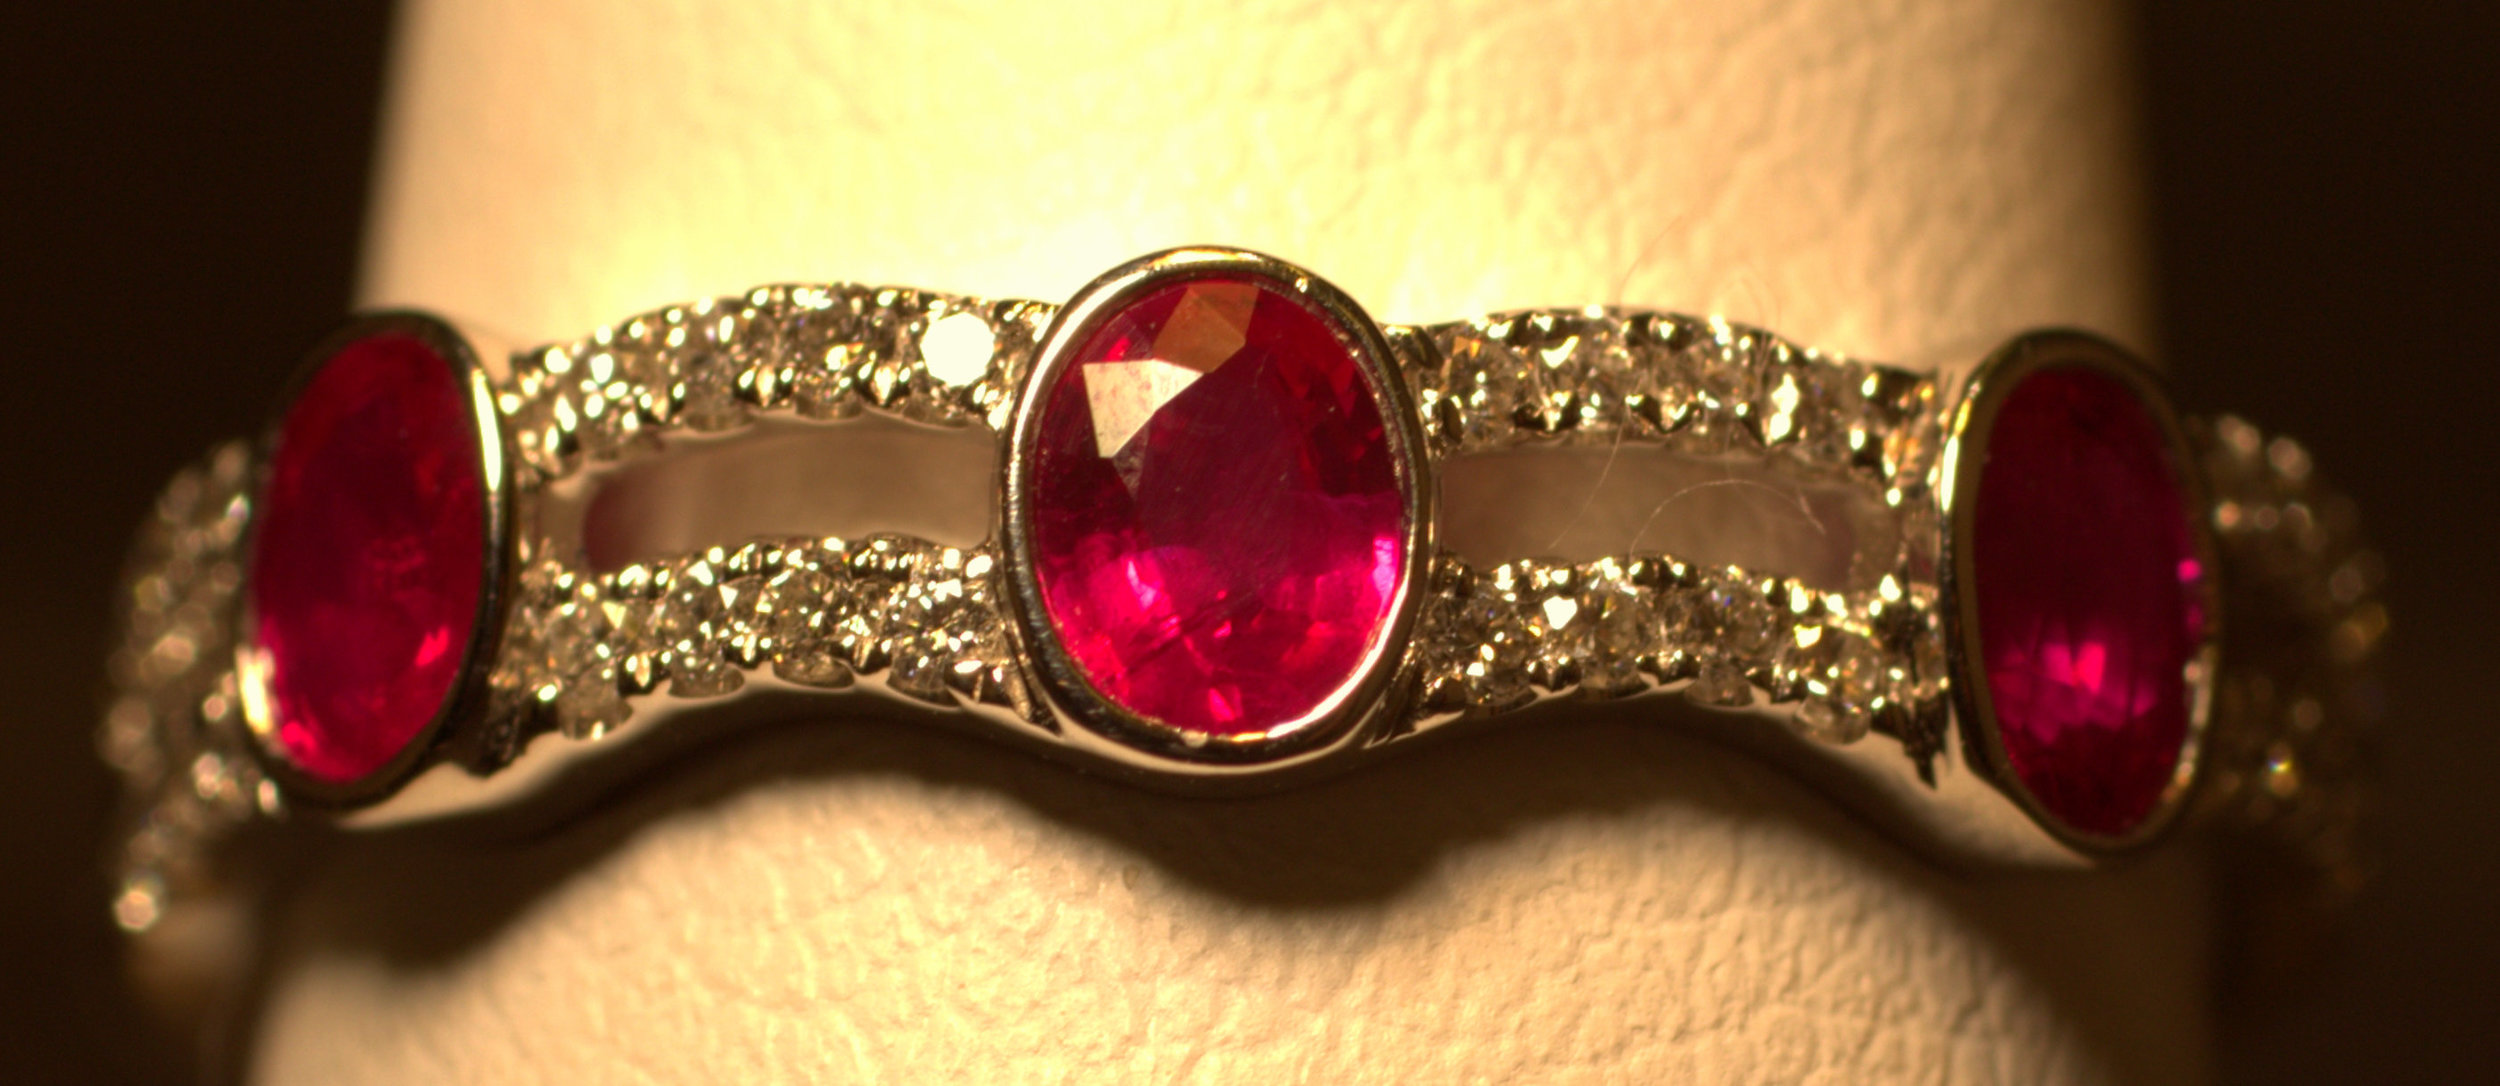 ruby and diamond ring two rows of diamonds between oval rubies great rich red color in the rubies great fire set off by the sparkle of the well cut diamonds at Marlen Jewelers in Rocky River minutes from Cleveland.jpg